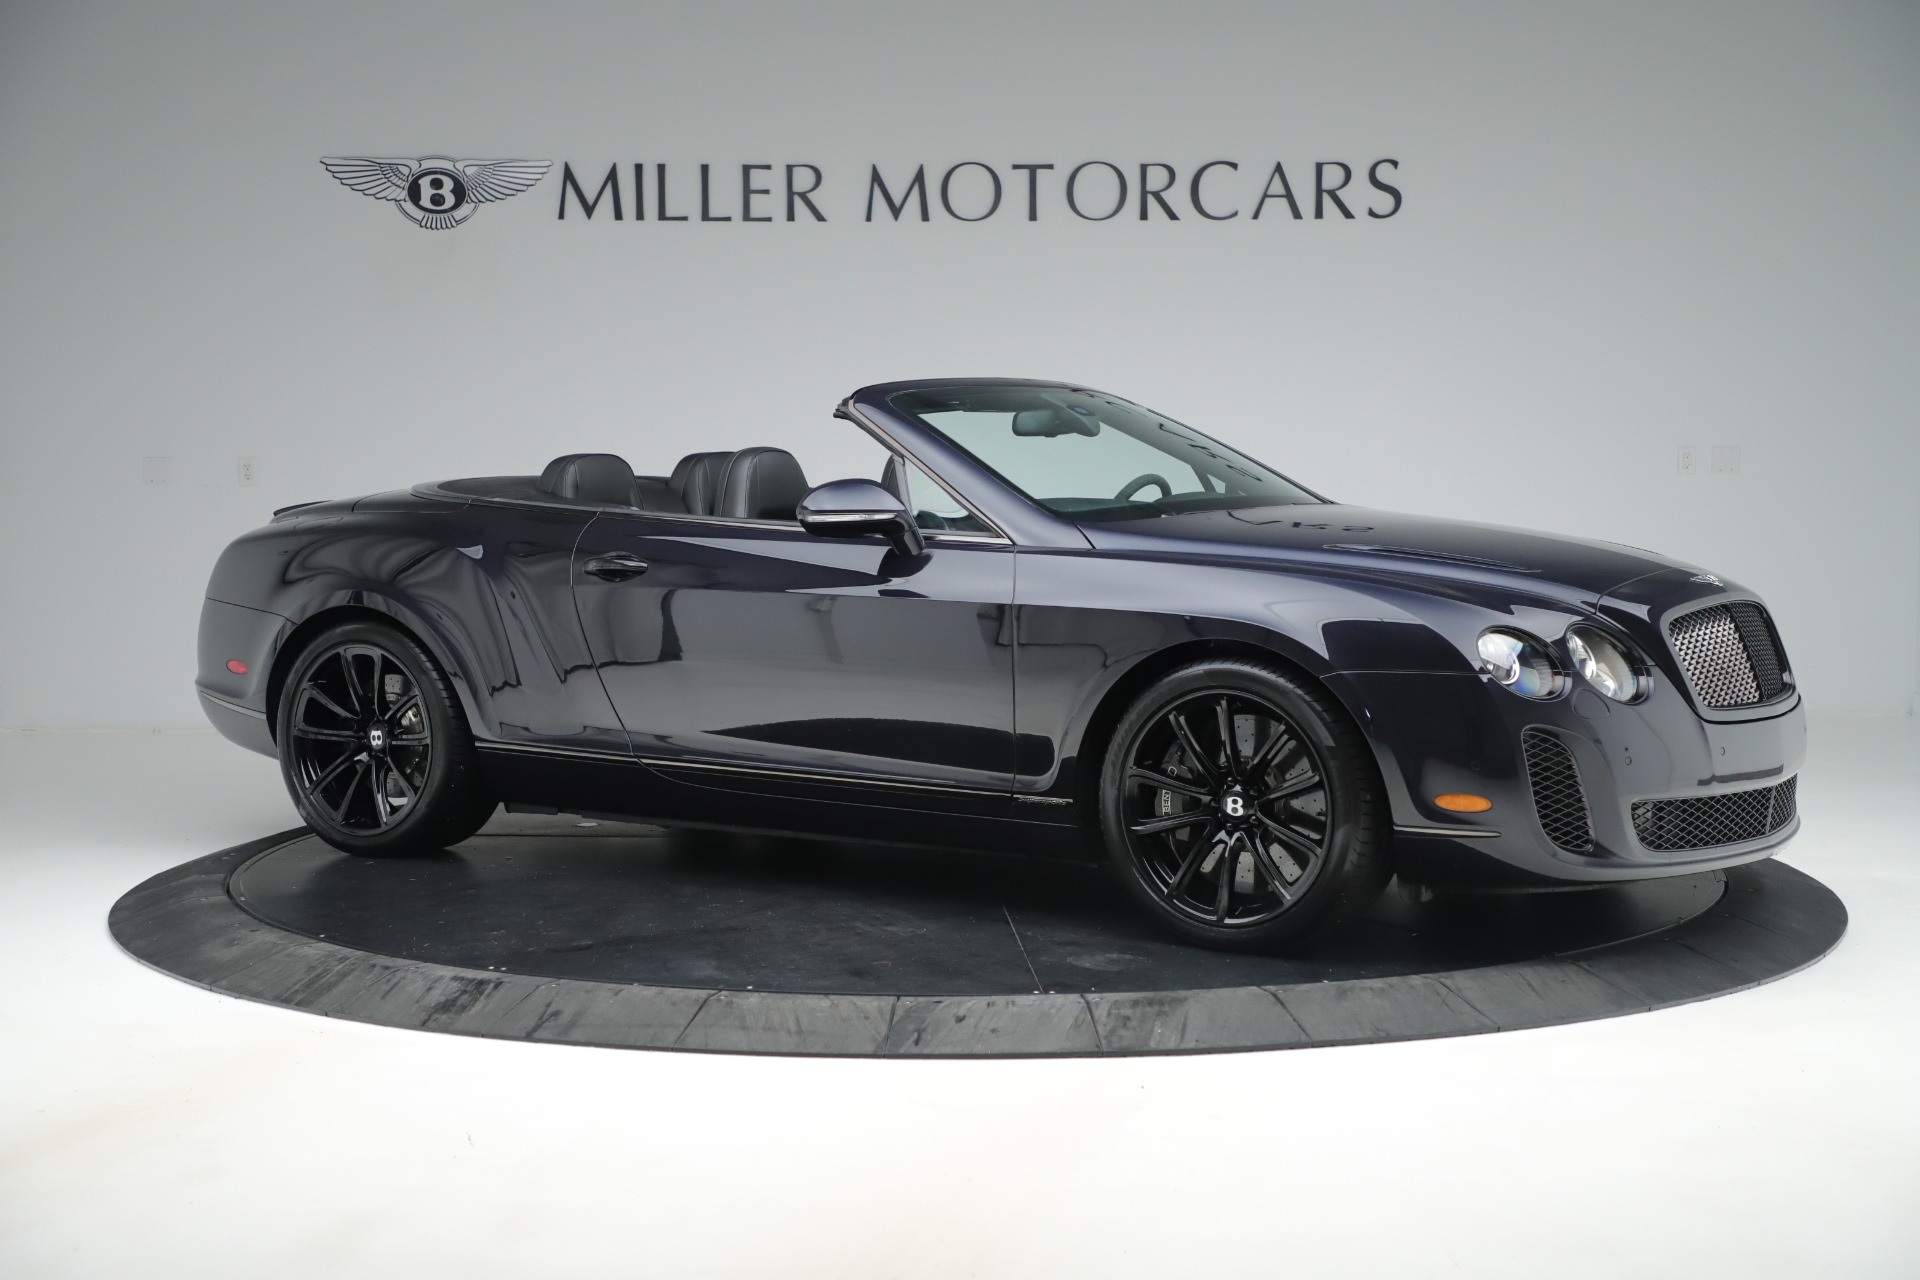 Used 2012 Bentley Continental GT Supersports For Sale In Westport, CT 3214_p10